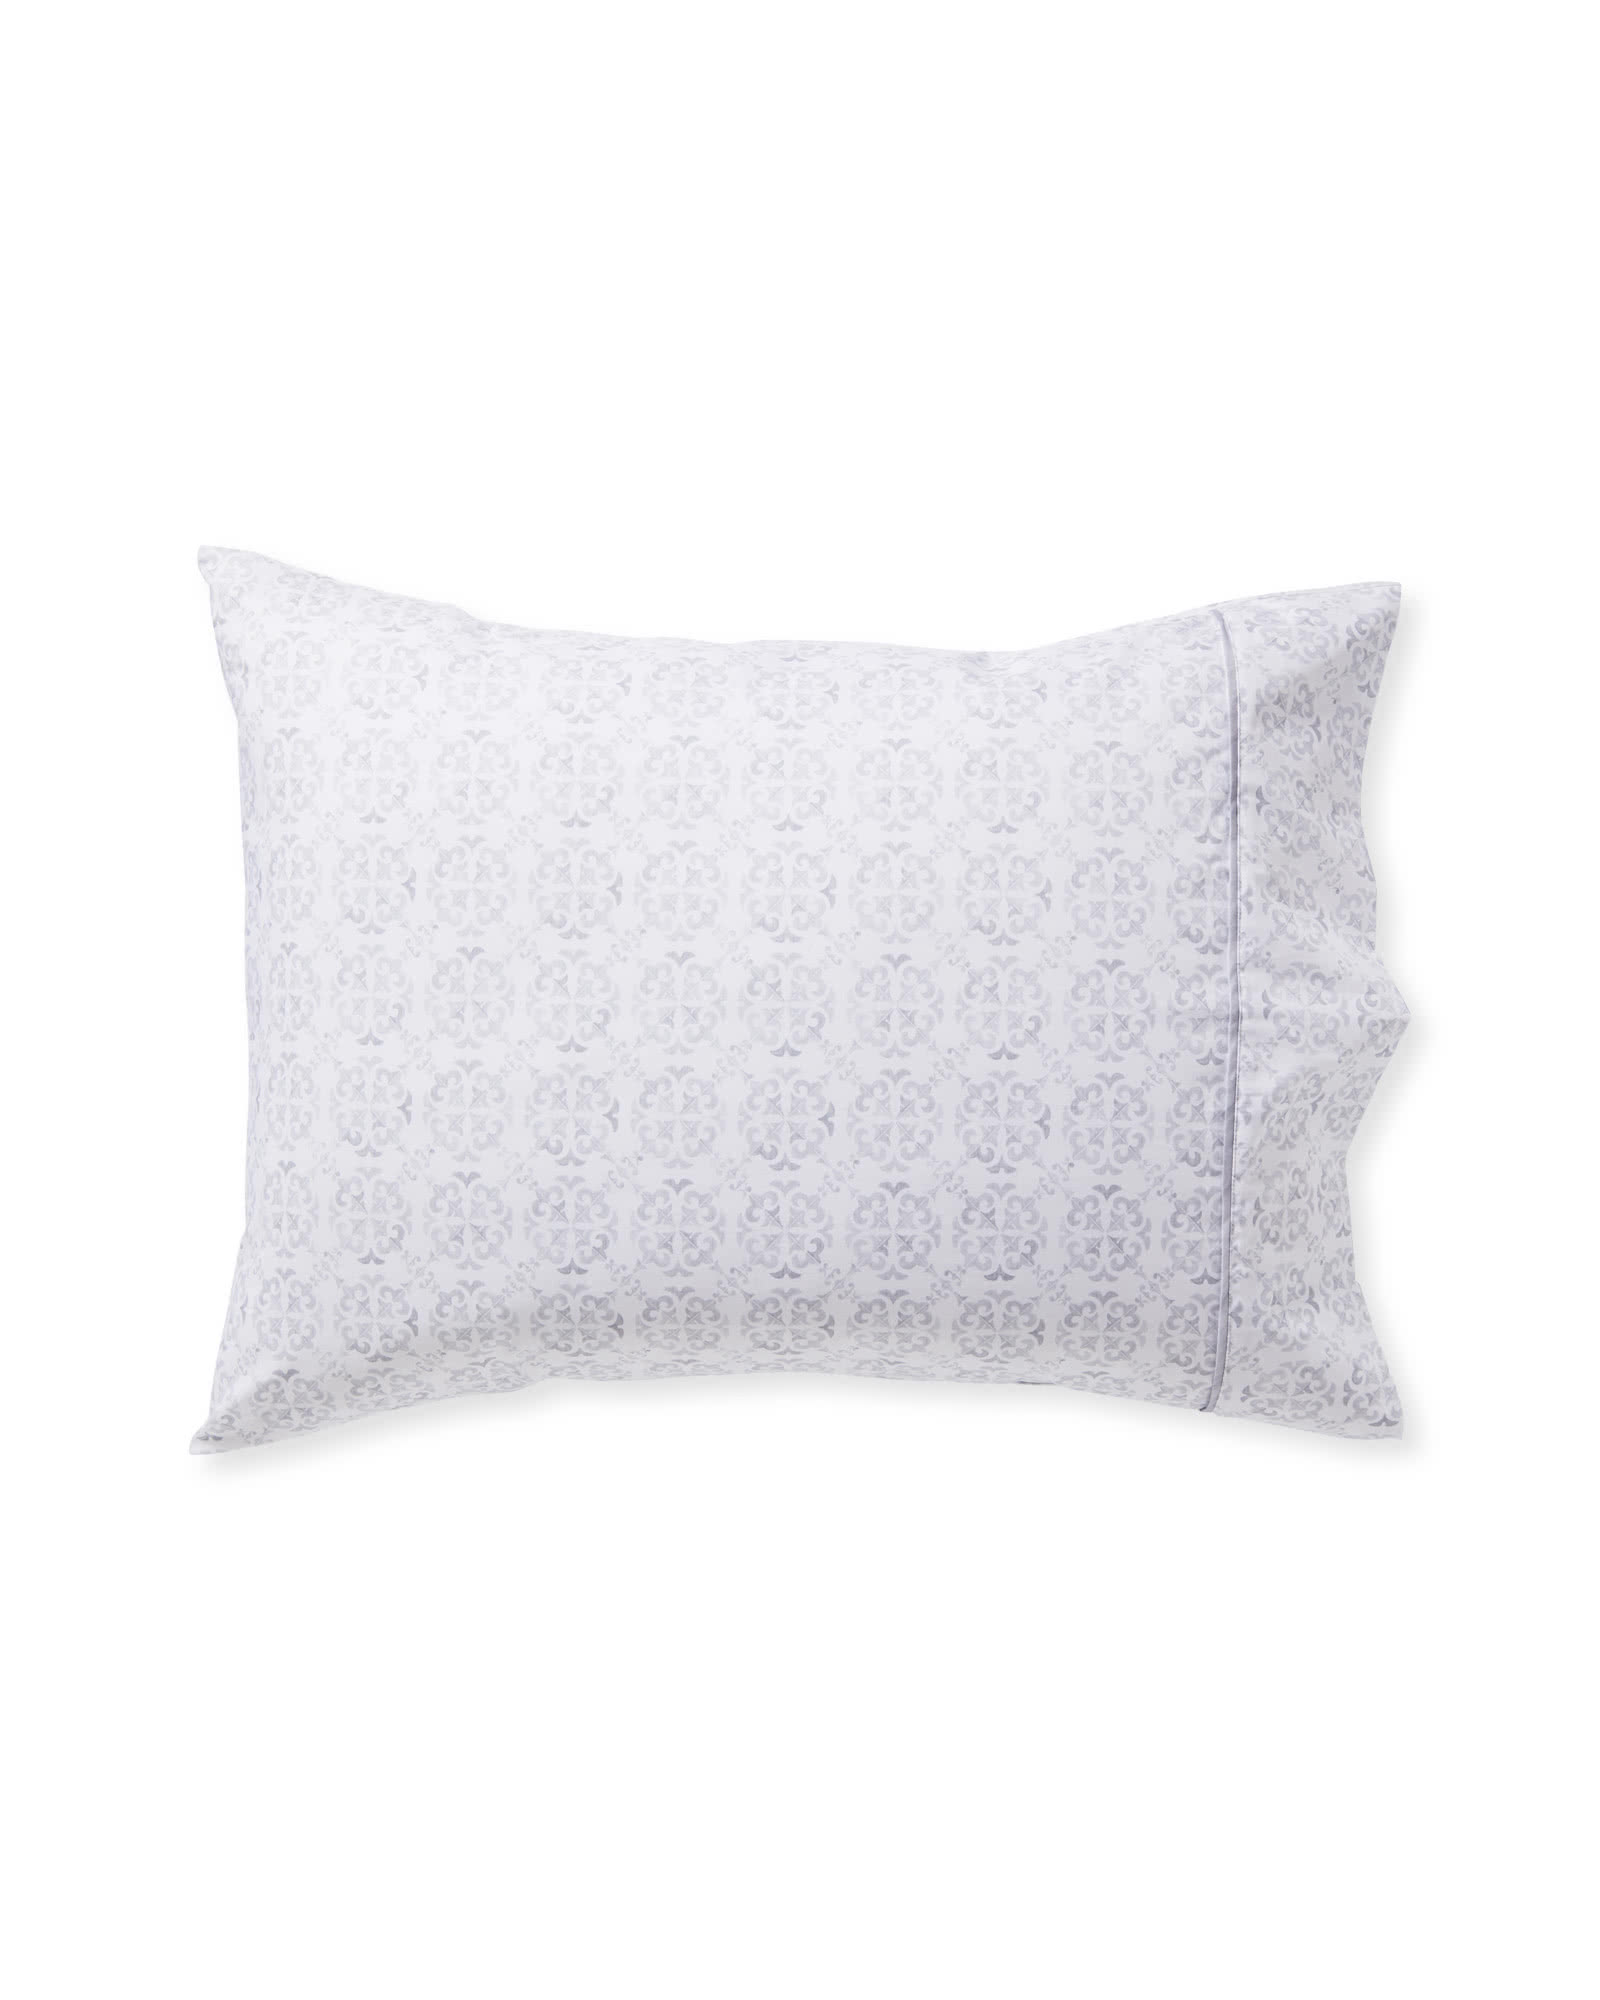 Wentworth Pillowcases (Extra Set of 2), Grey